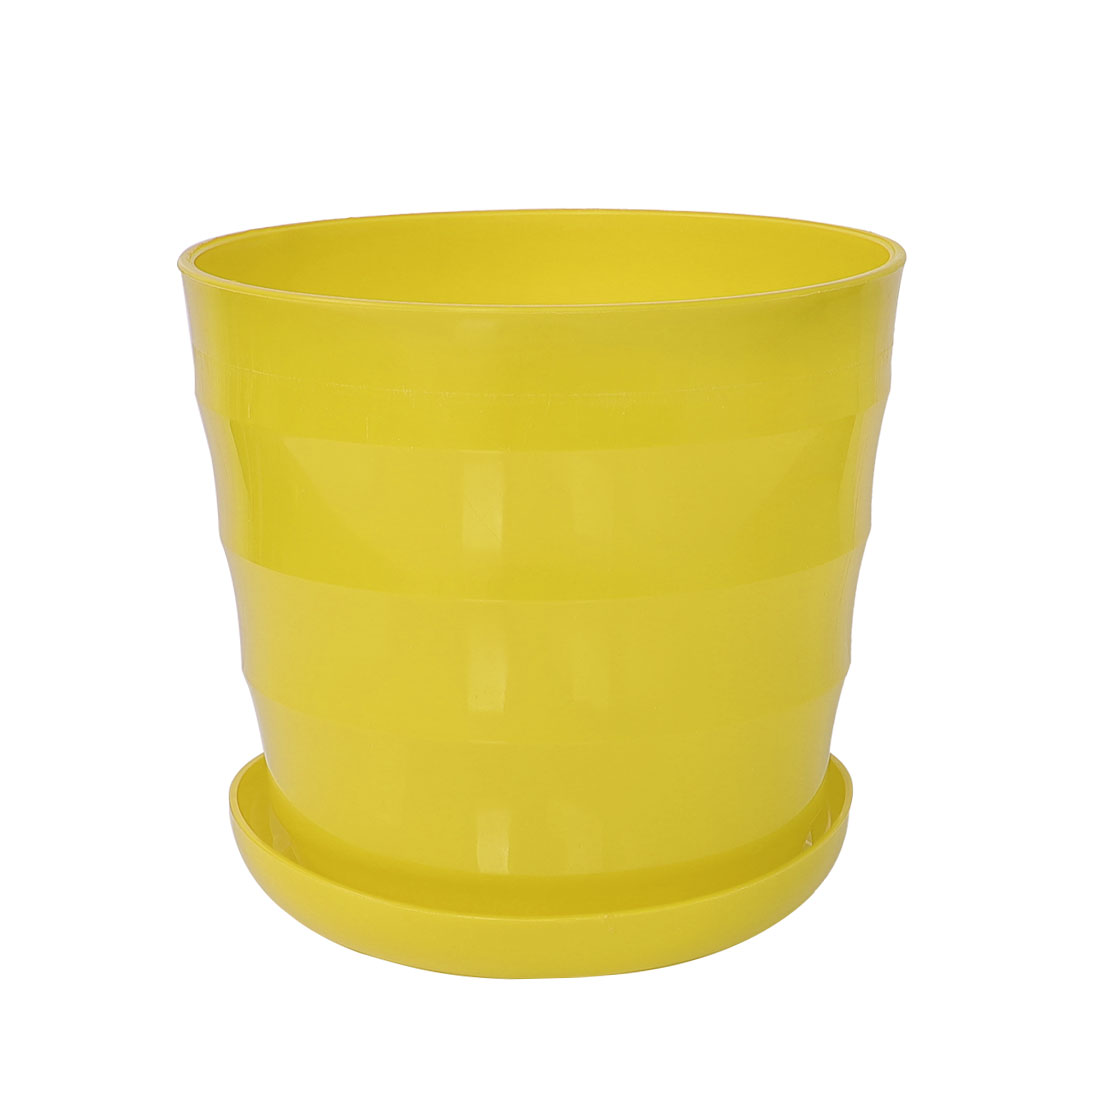 Home Balcony Garden Plastic Round Plant Planter Holder Flower Pot Yellow 19cm Dia